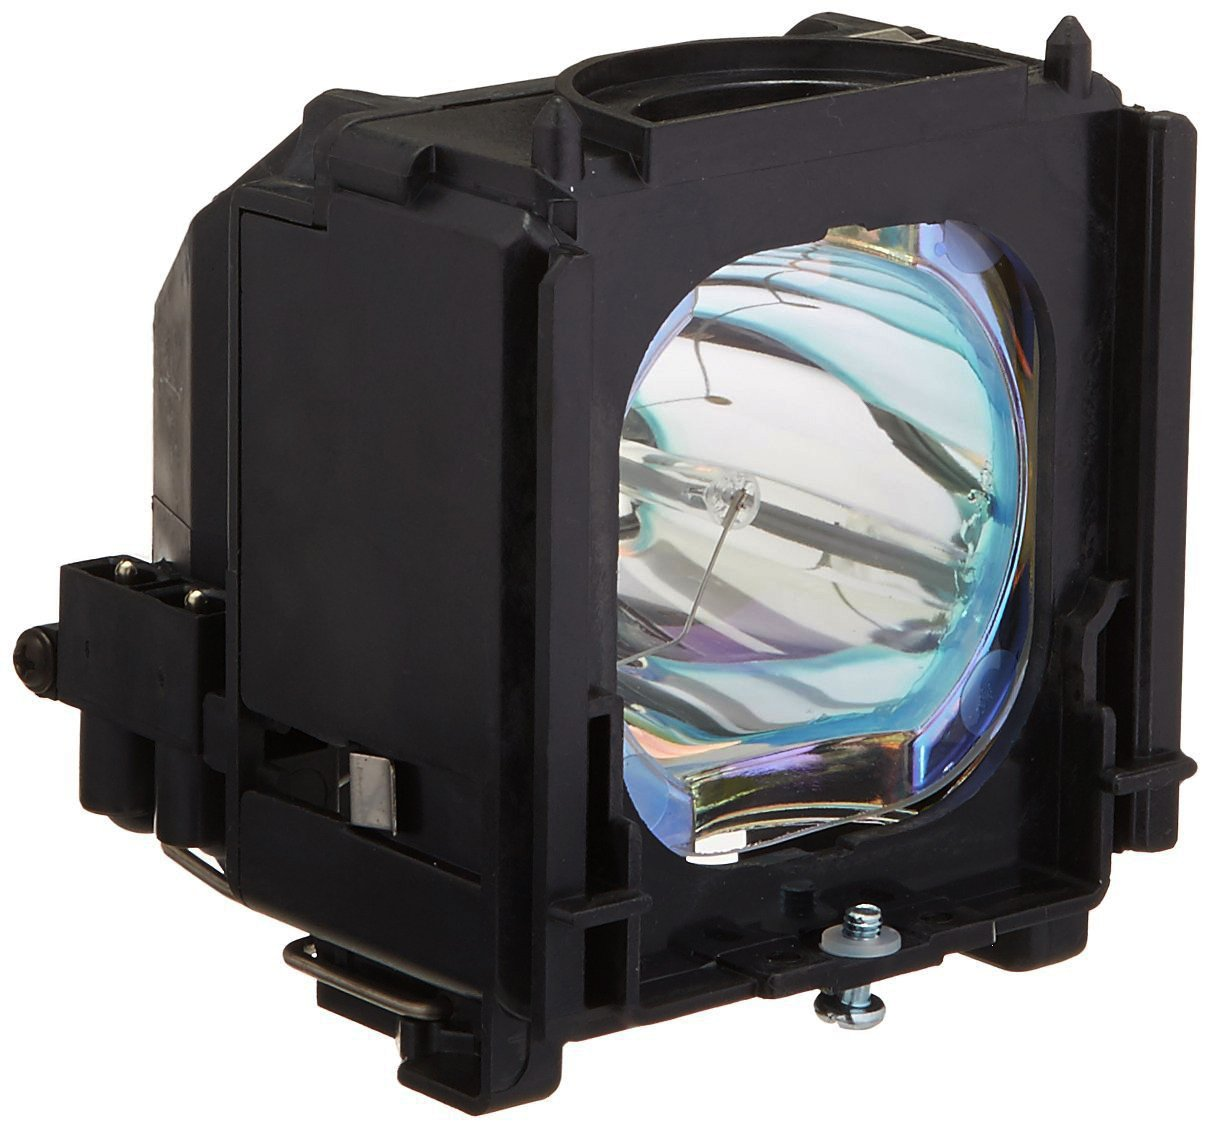 AHLIGHTS BP96-01472A TV Lamp with Housing Replacement for Match HLS5687WX HLS4265W HLS4266W HLS4666W